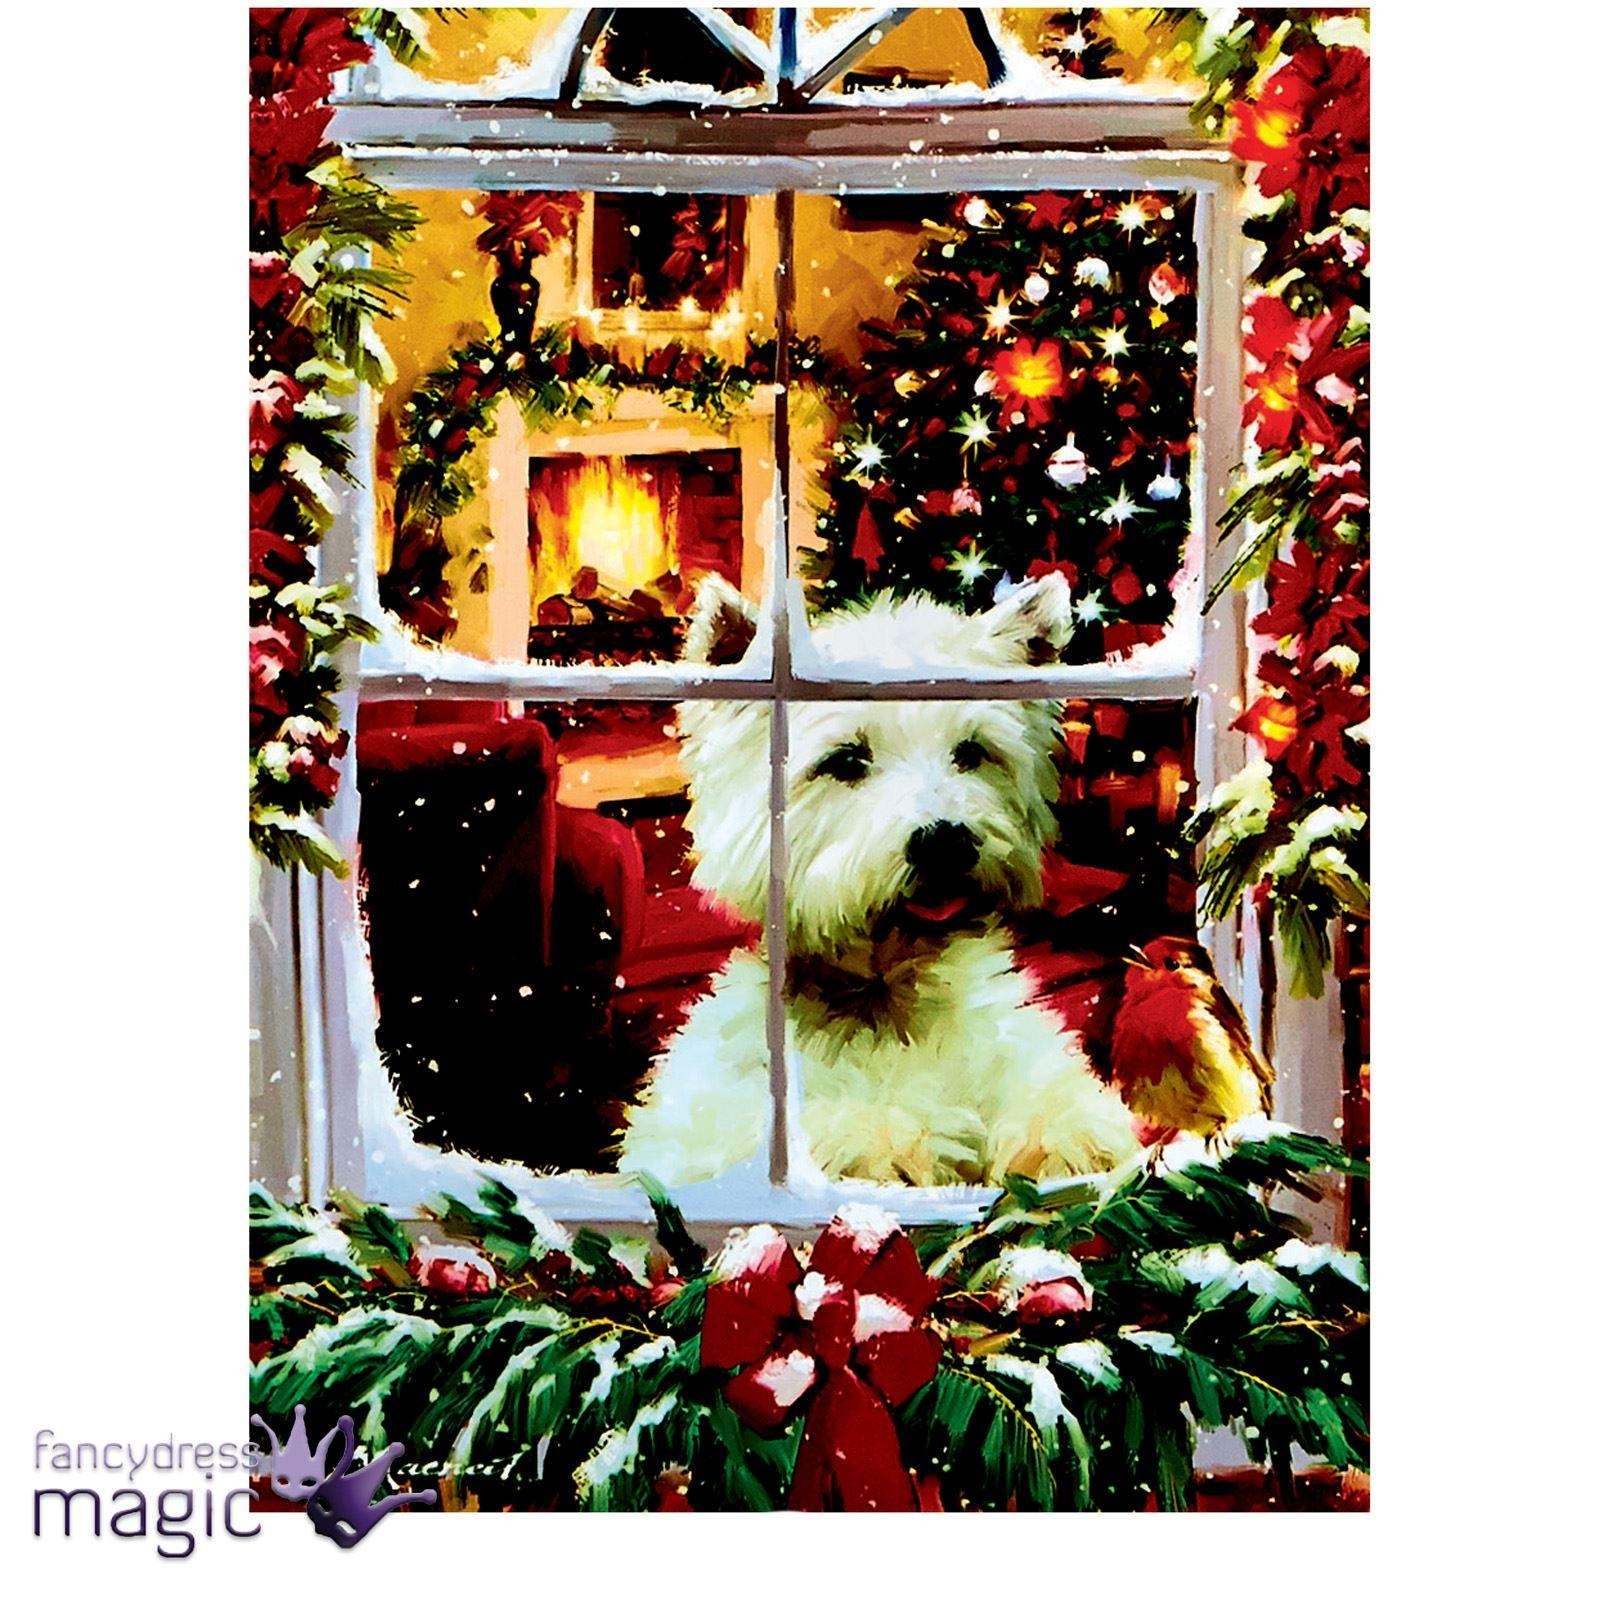 40 X 30Cm Christmas Animal Scene Led Canvas Battery Operated Cat With Westie Wall Art (Image 2 of 20)